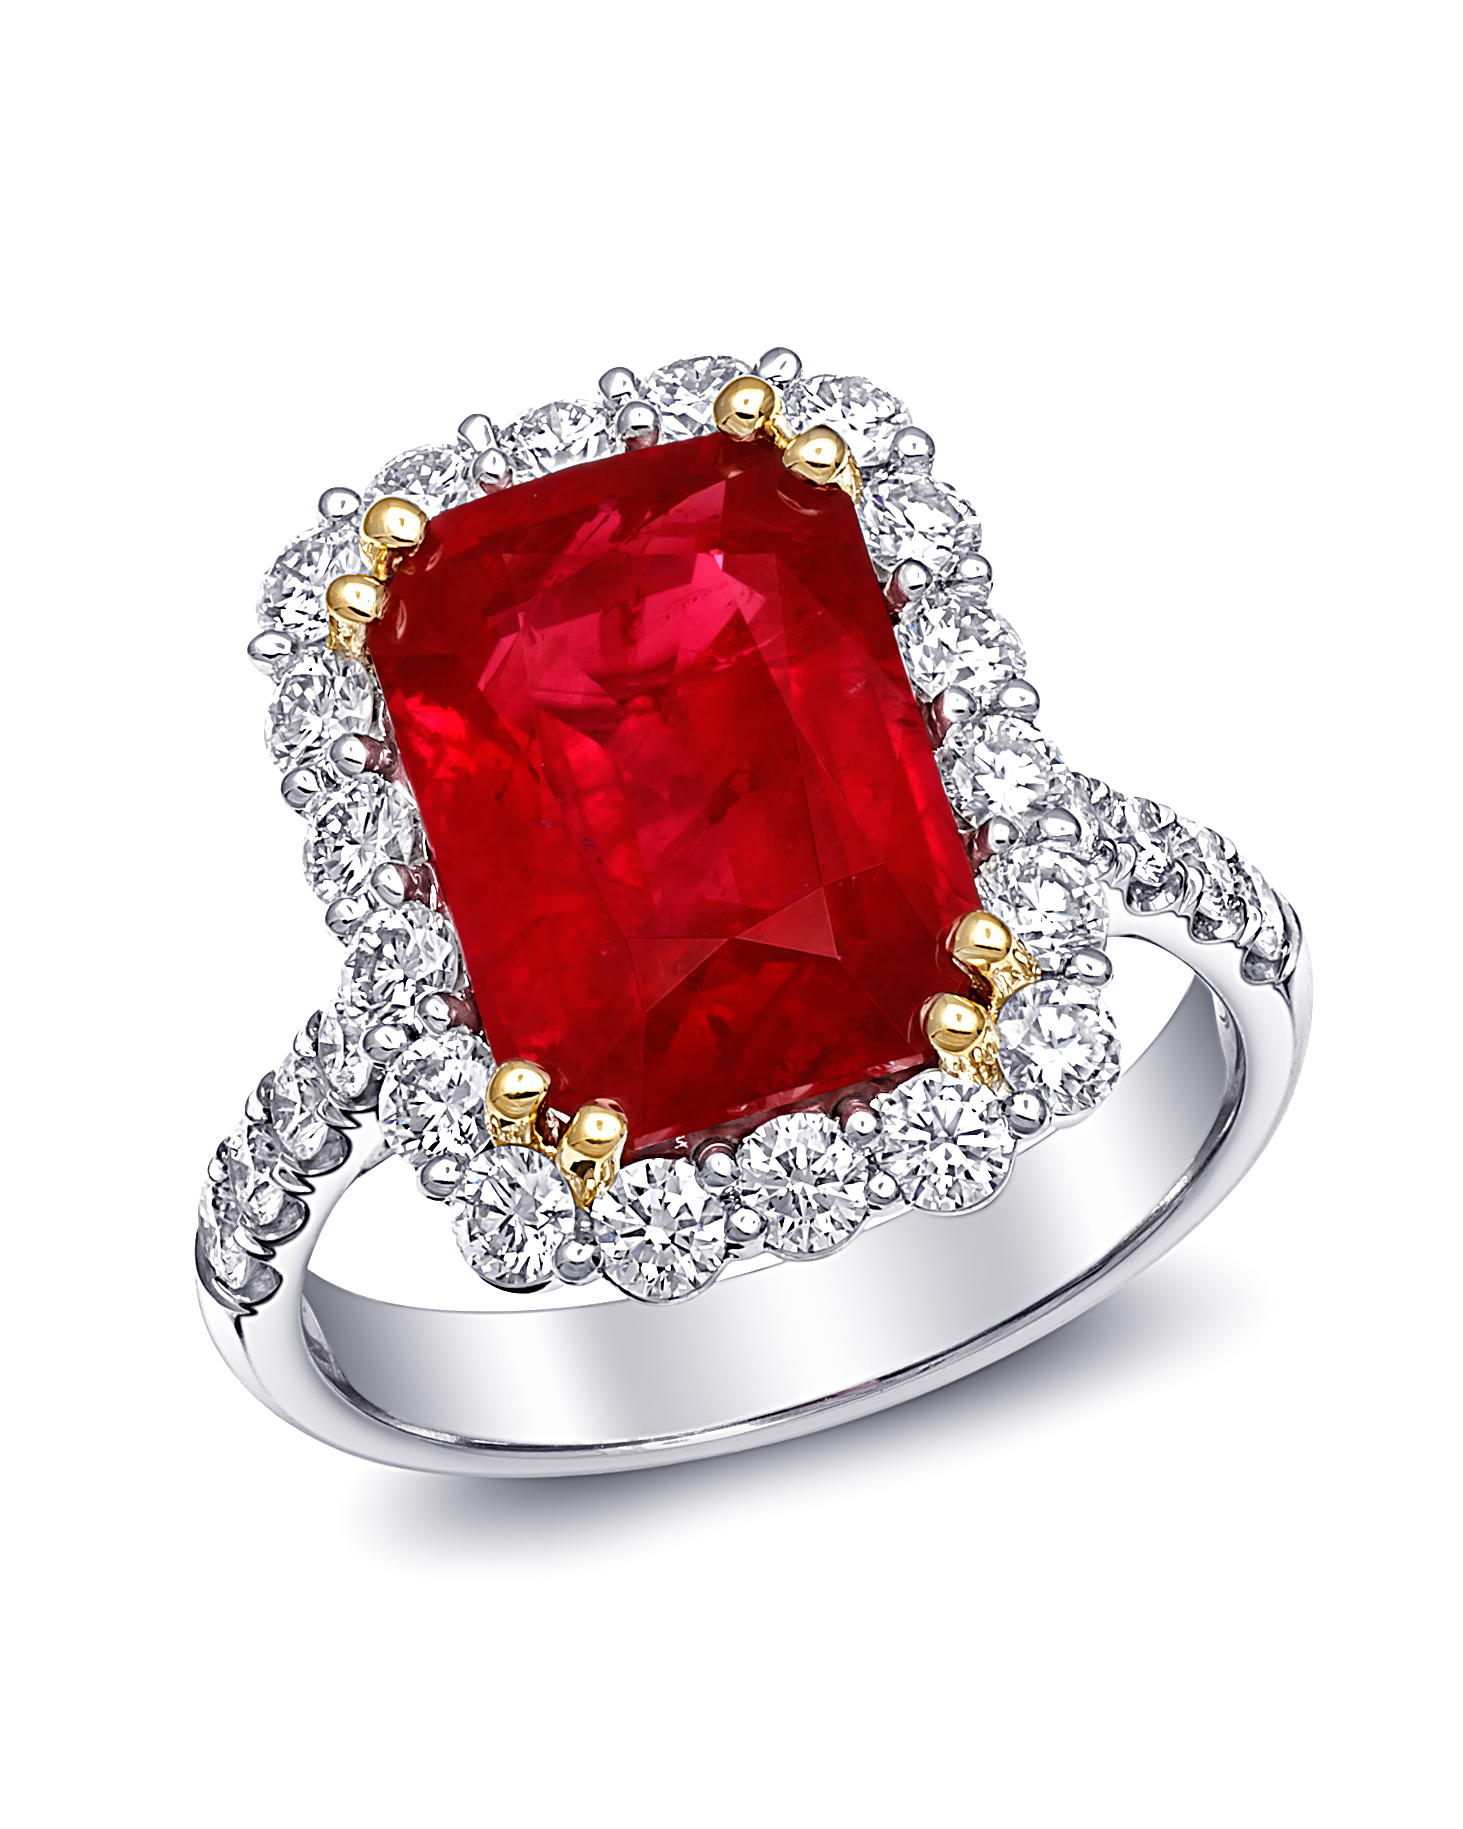 Emerald-Cut Ruby Engagement Ring